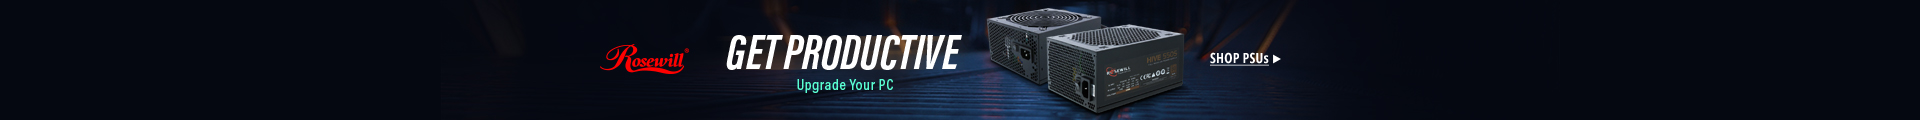 Get Productive Upgrade Your PC